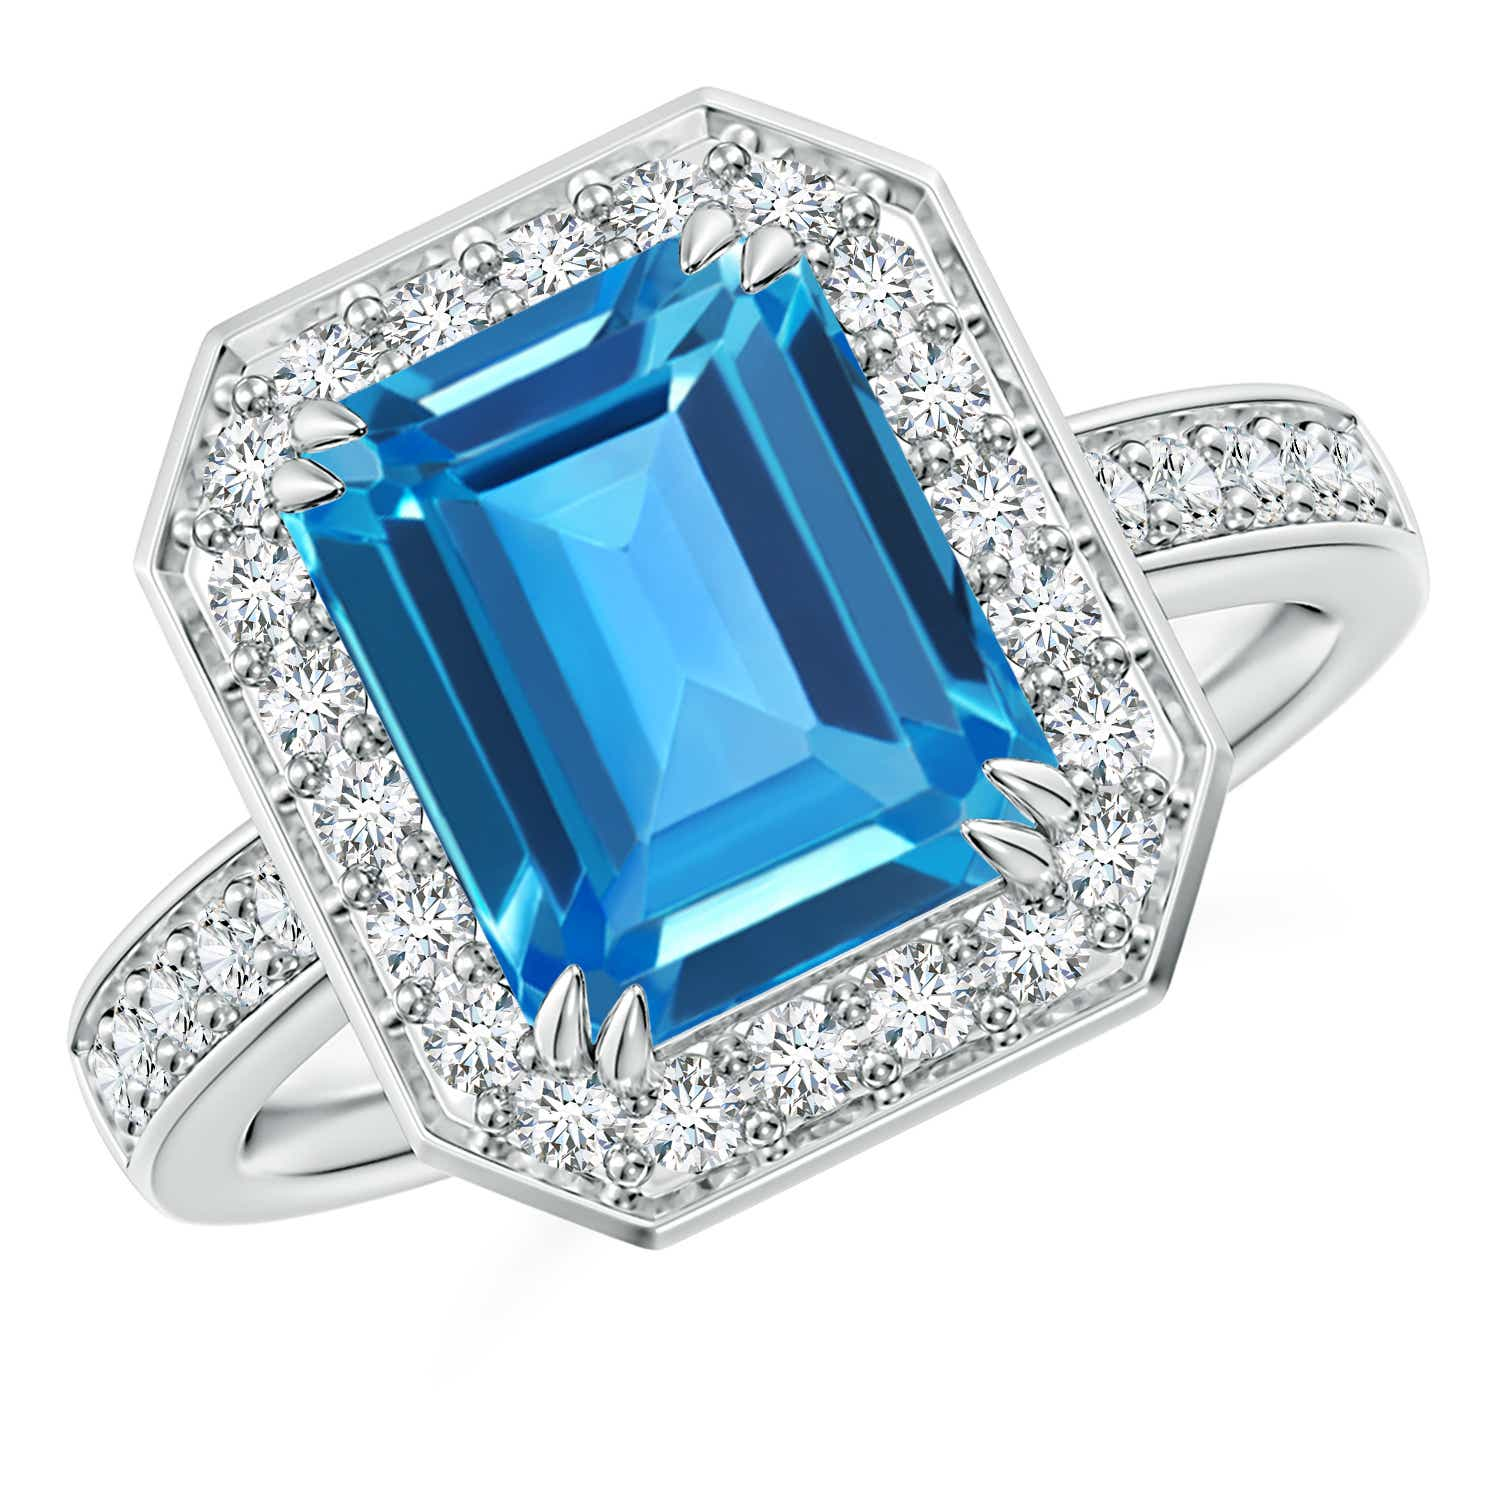 Emerald Cut Swiss Blue Topaz Engagement Ring With Diamonds Angara